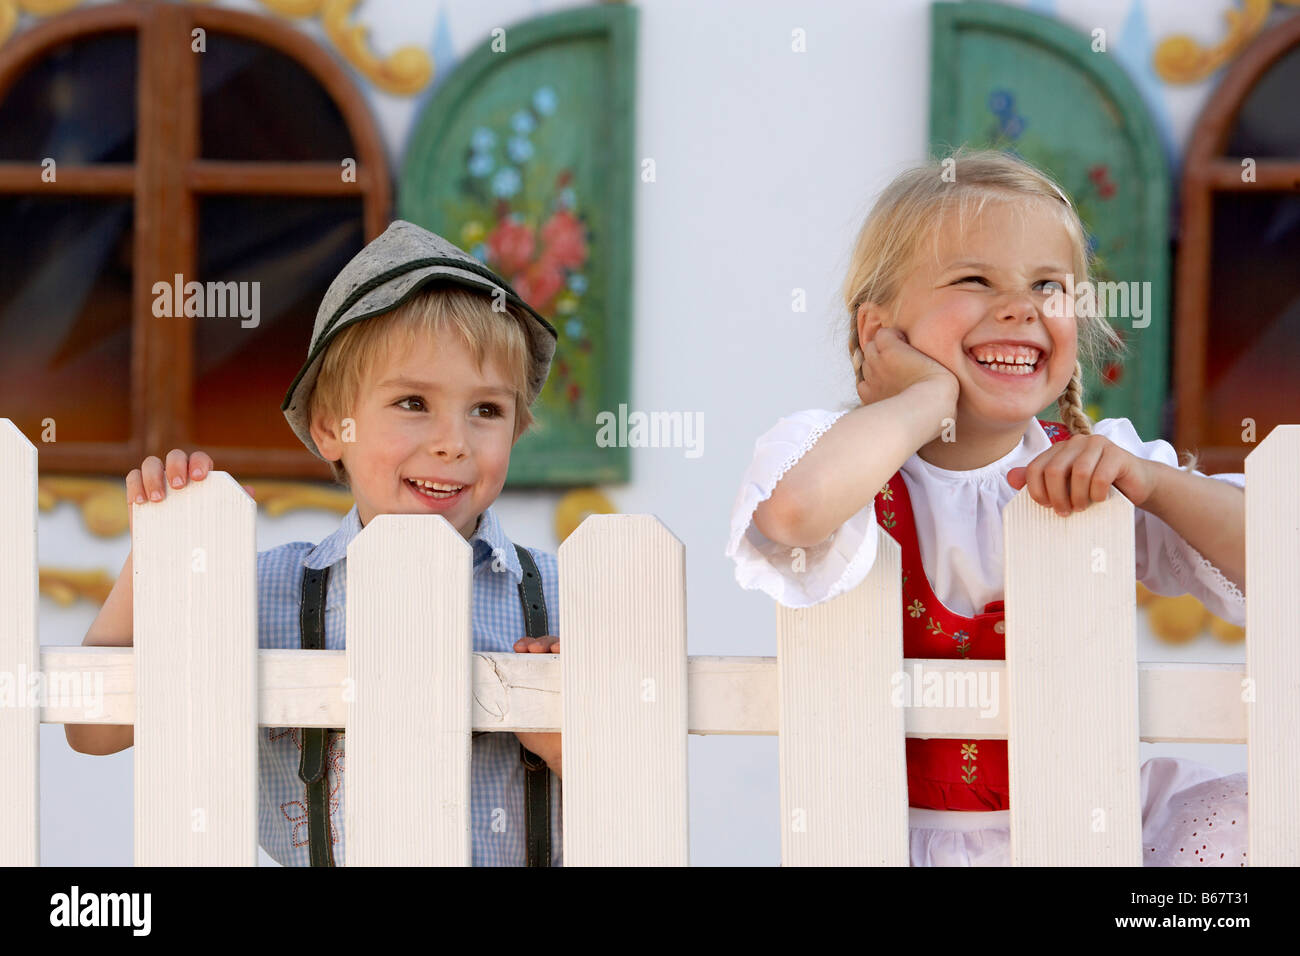 Two children (3-5 years) standing behind a fence - Stock Image